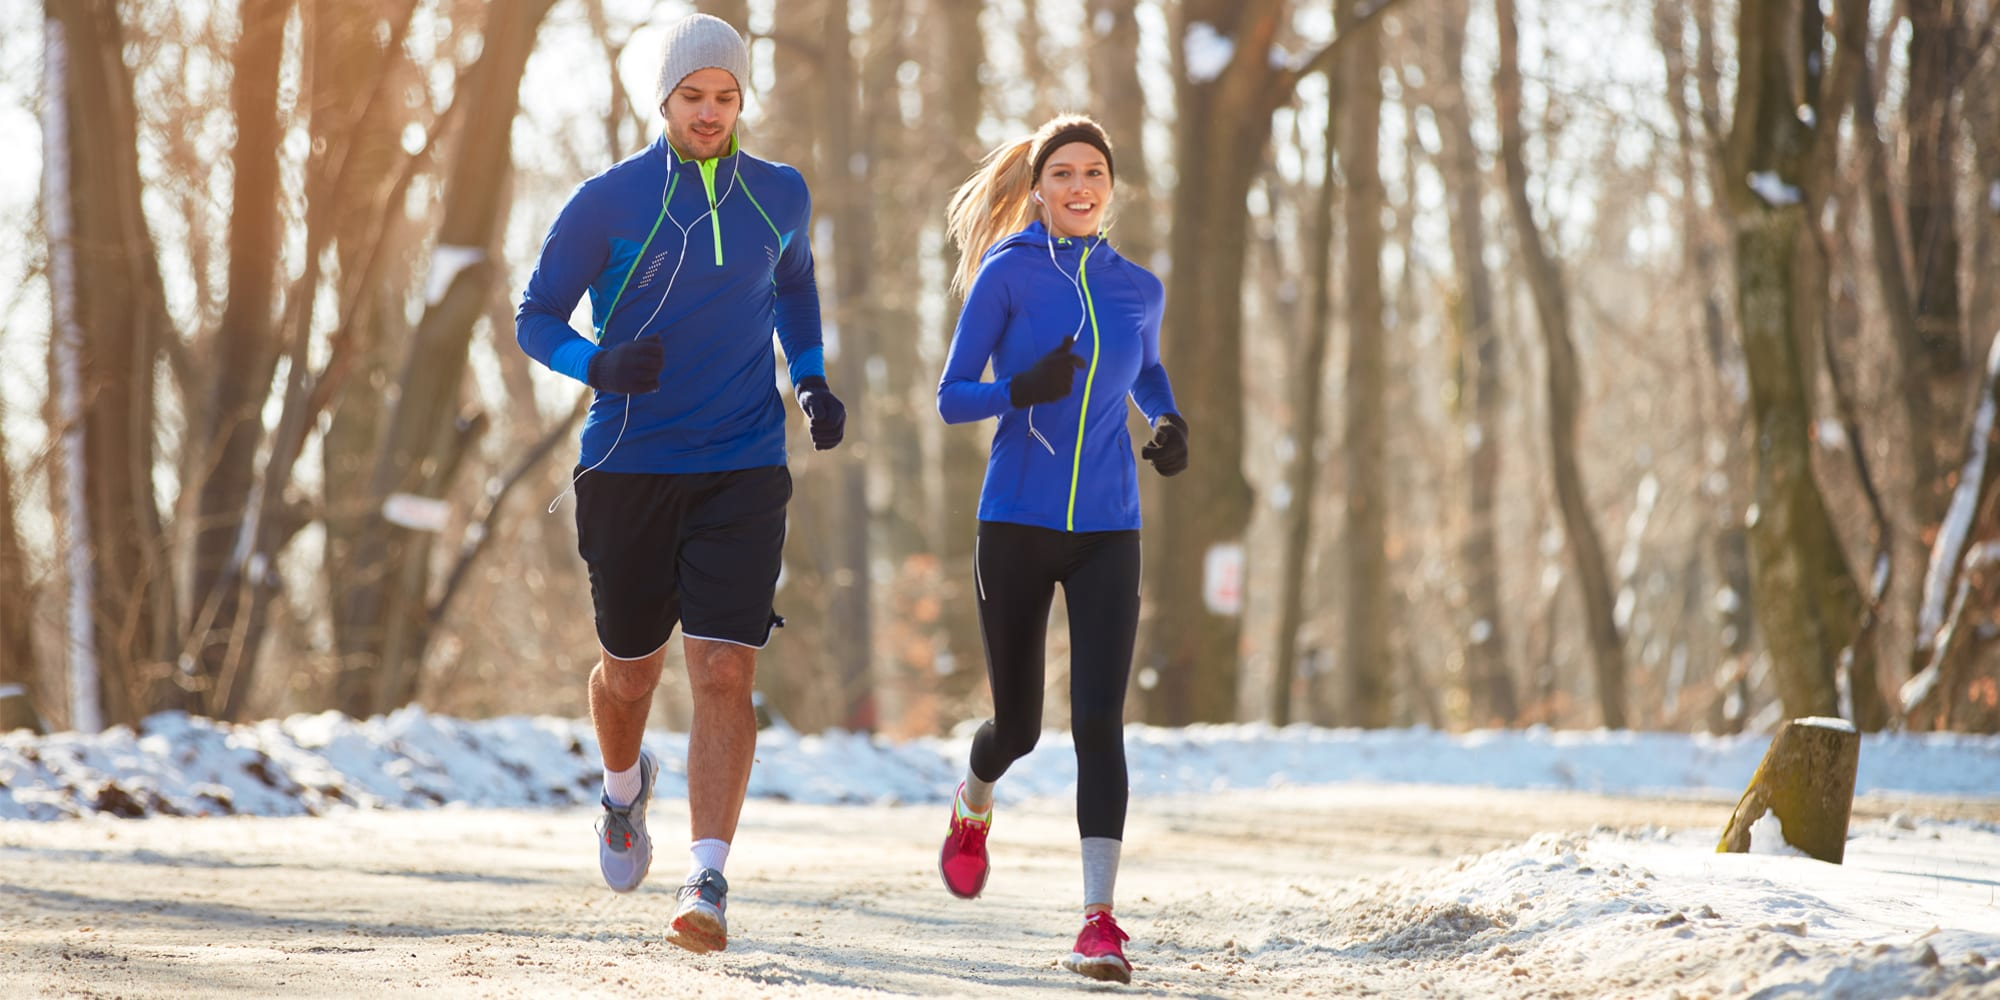 7 Tips to Stay Motivated During Sluggish, Food-Filled Winter Months